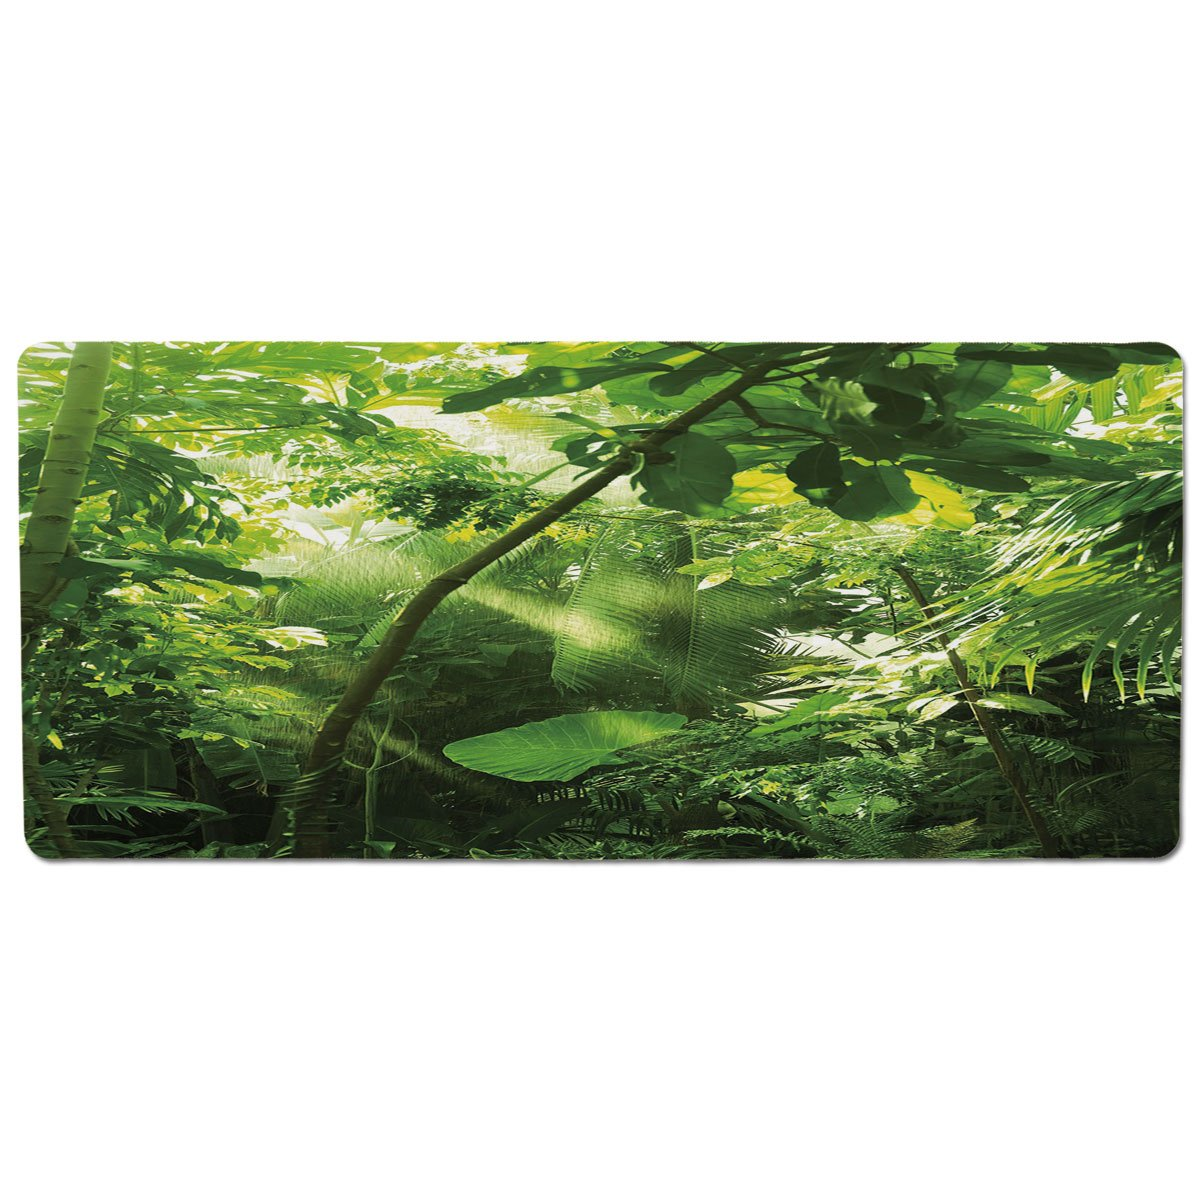 35.4\ iPrint Pet Mat for Food and Water,Plant,Rain and Sun at Exotic Tropical Forest Jungle Undamaged Nature Brazil Rainforest Decorative,Forrest Green,Rectangle Non-Slip Rubber Mat for Dogs and Cats